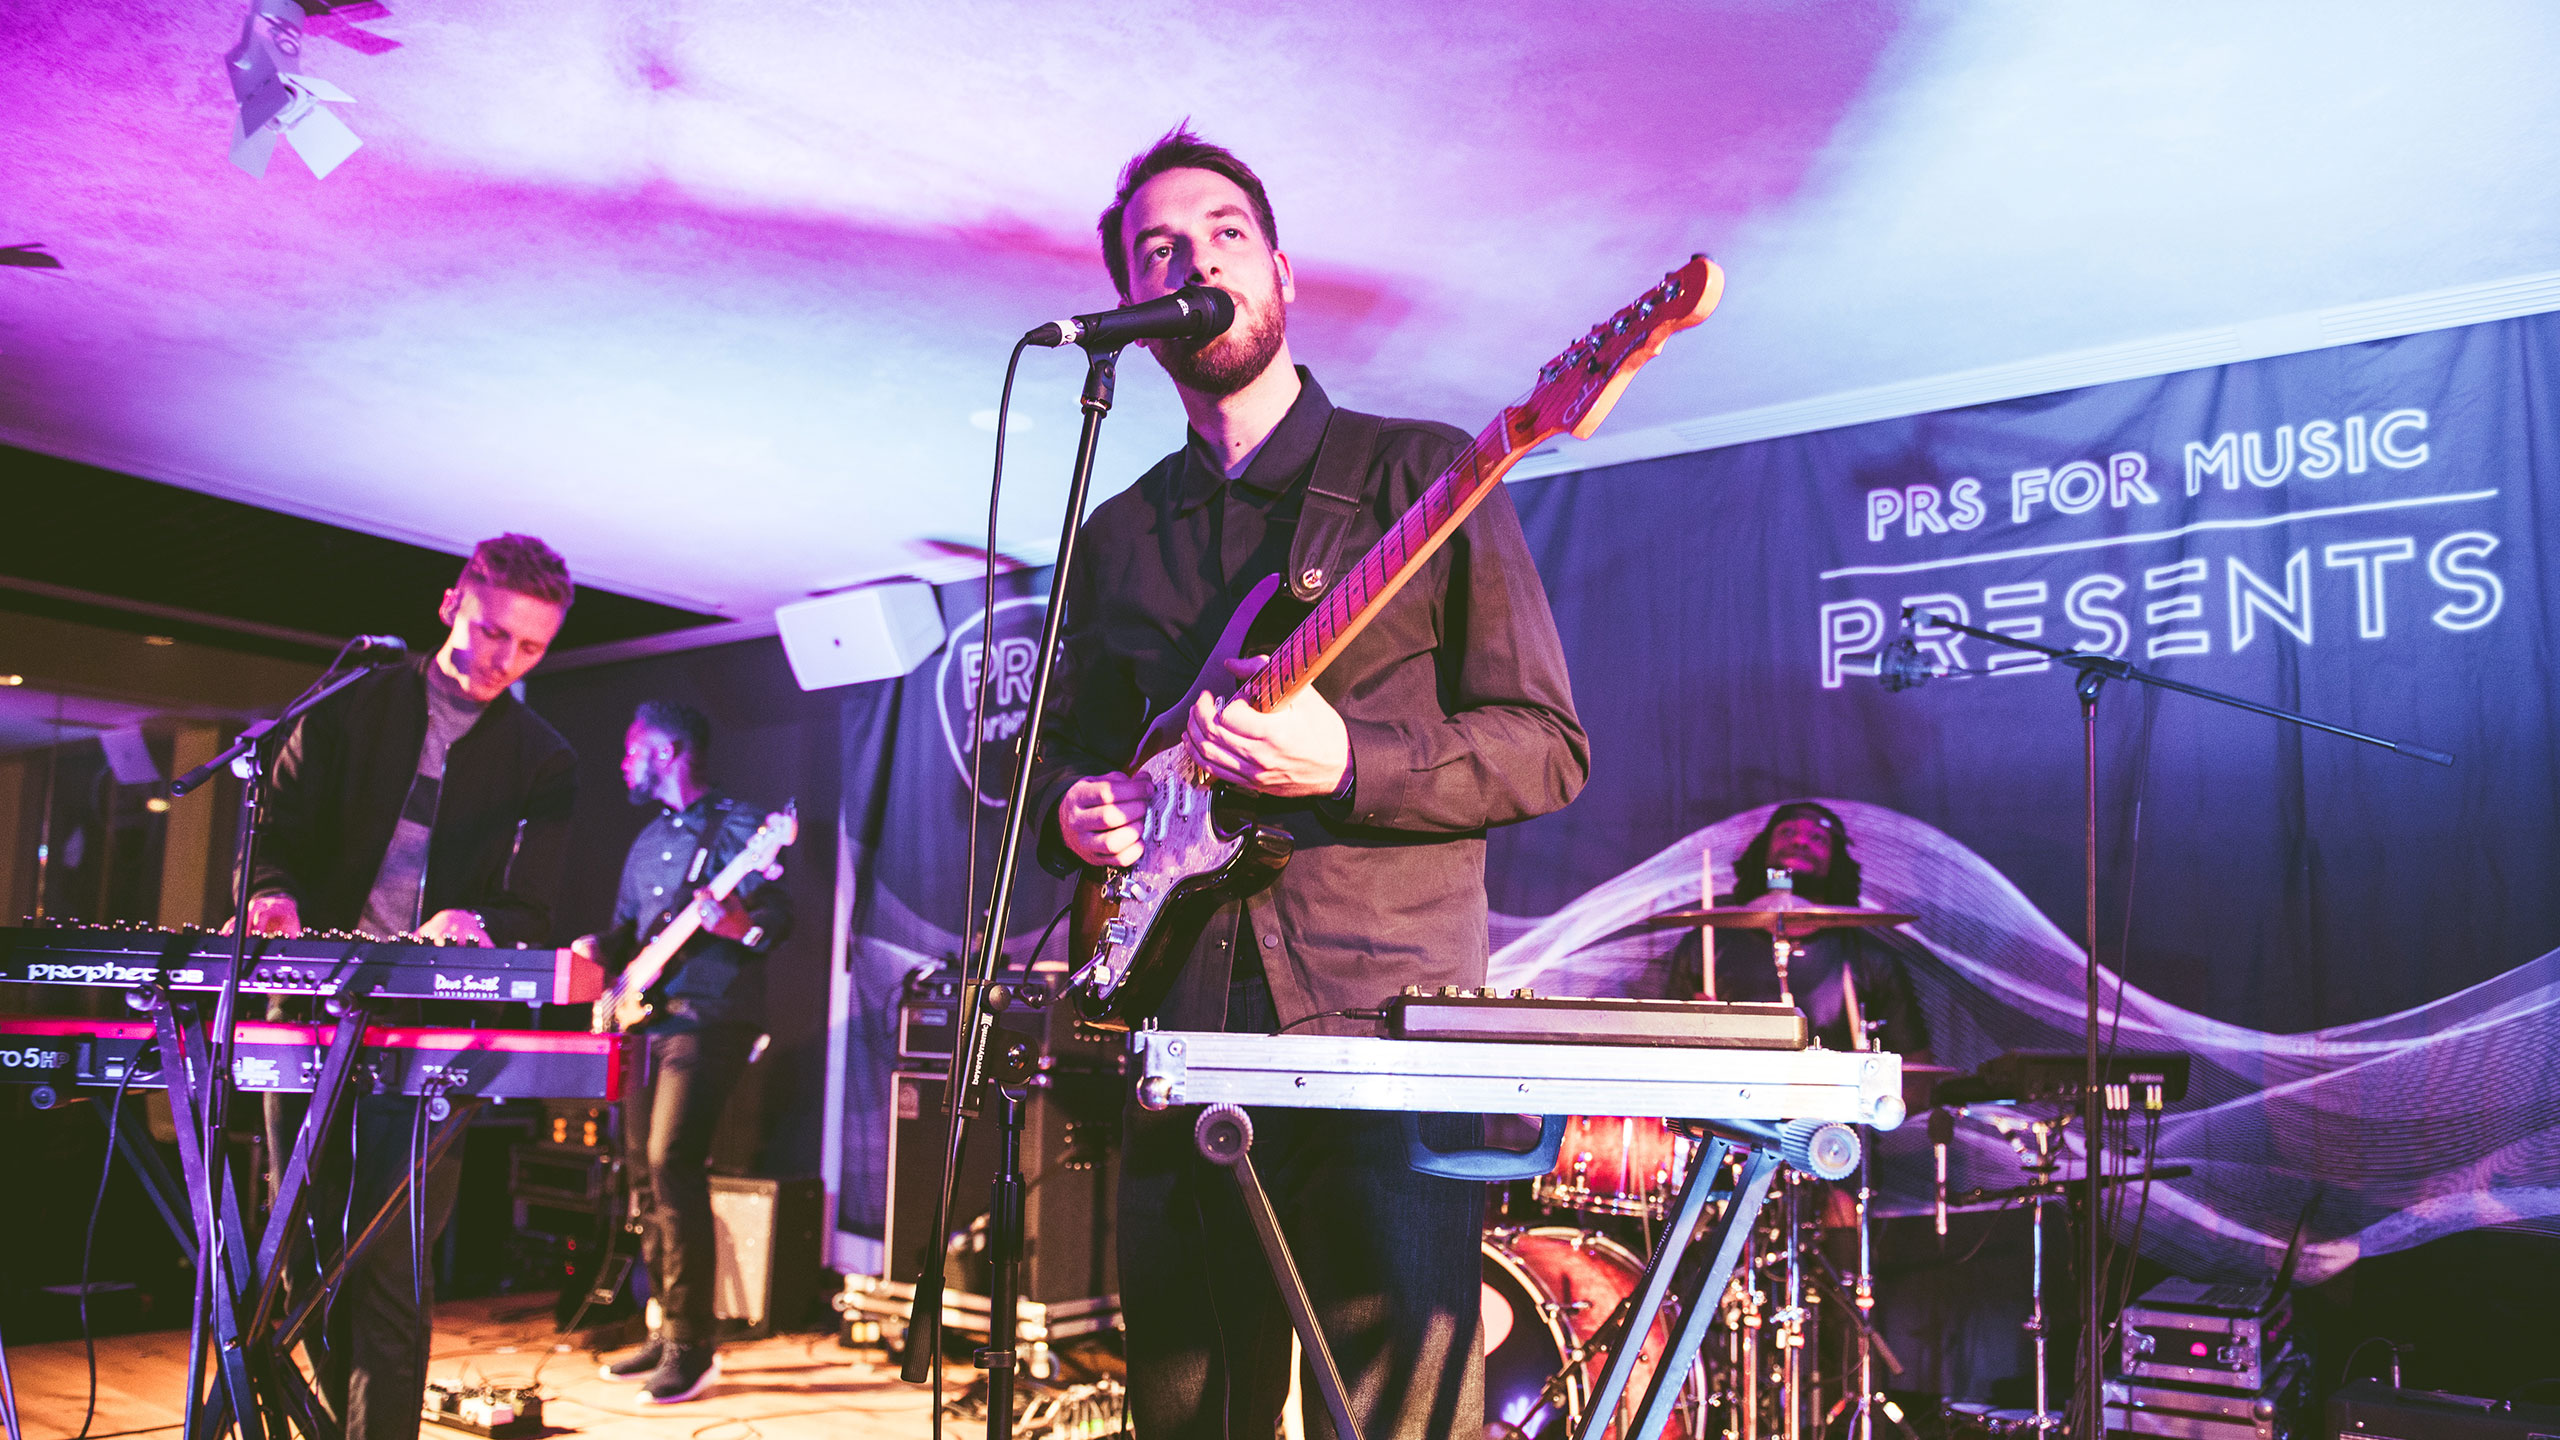 Honne perform guitar, vocals and synth with a bass player and drummer, on stage at PRS Presents